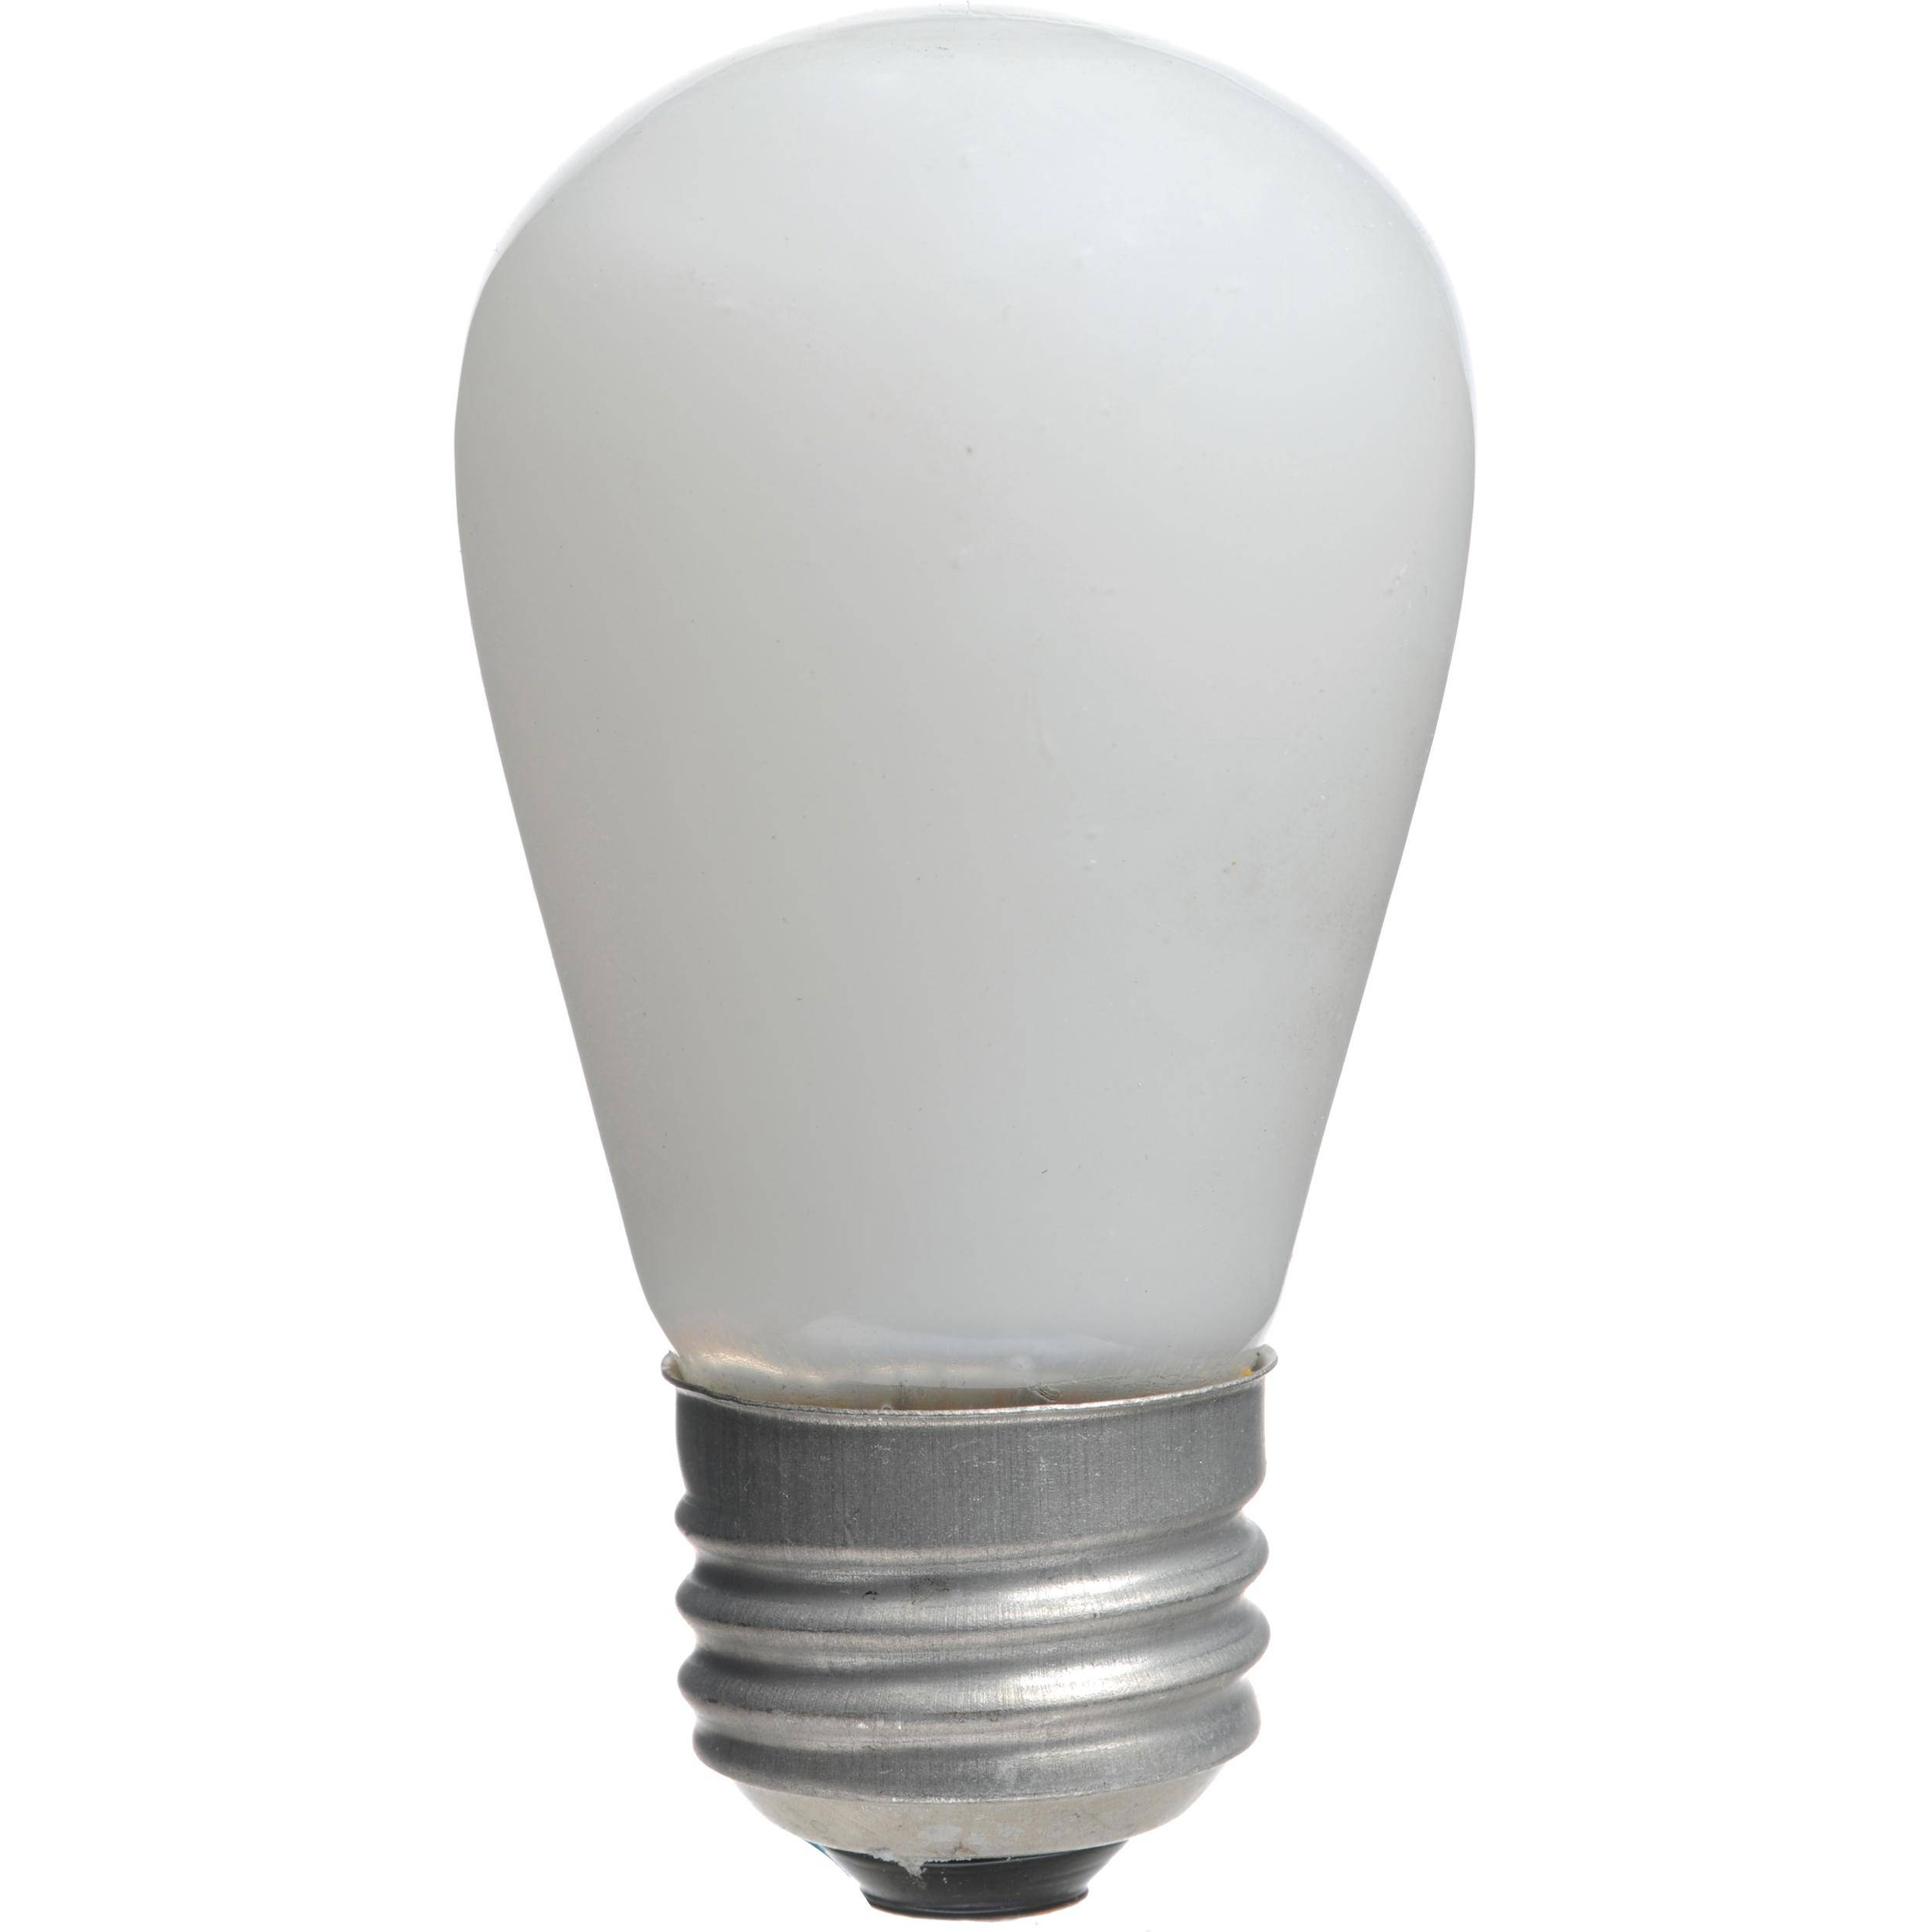 Ushio Ph140 Lamp 75w 120v 1001266 Bh Photo Video Bulbs Led In Addition Halogen Light On Series Circuit Voltage